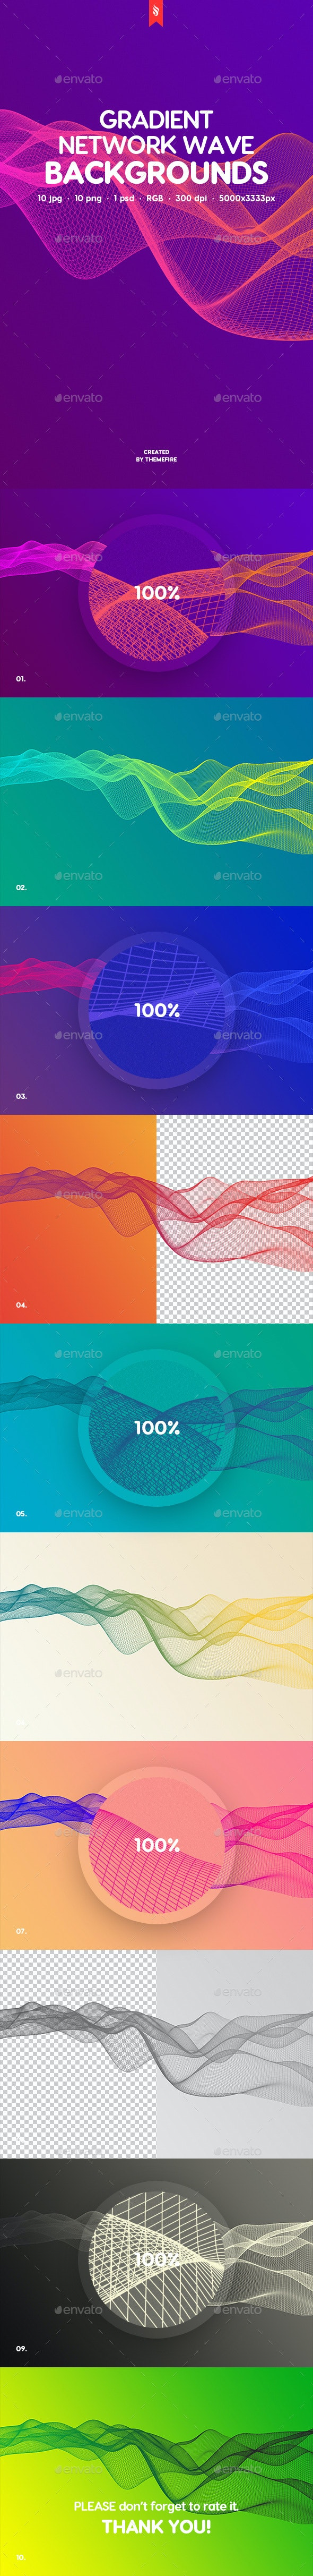 Gradient Network Wave Backgrounds - Abstract Backgrounds